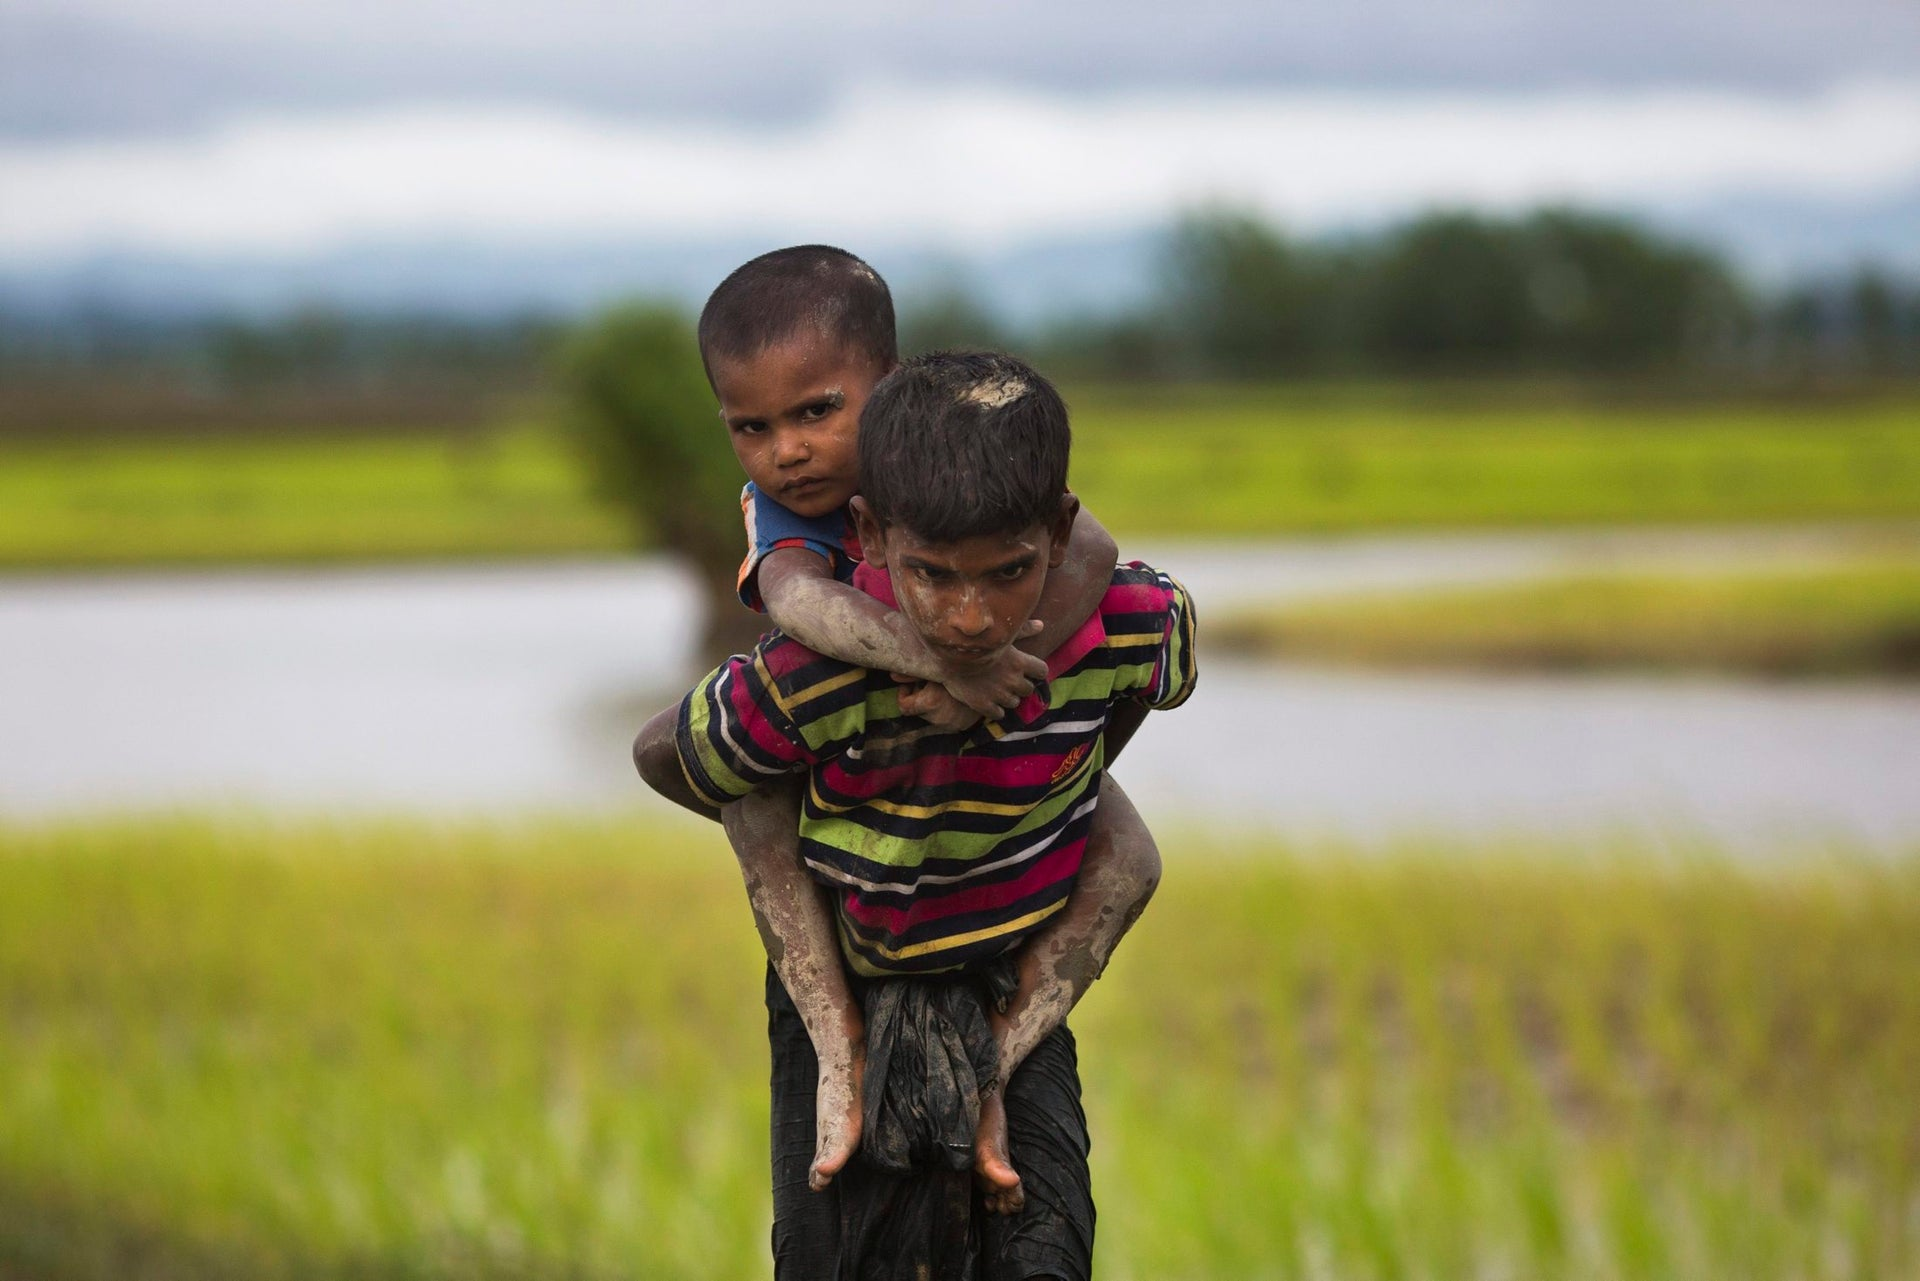 In this Sept. 1, 2017, file photo, a young Rohingya Muslim boy from Myanmar carries a child on his back after crossing over to the Bangladesh side of the border near Cox's Bazar's Teknaf area.